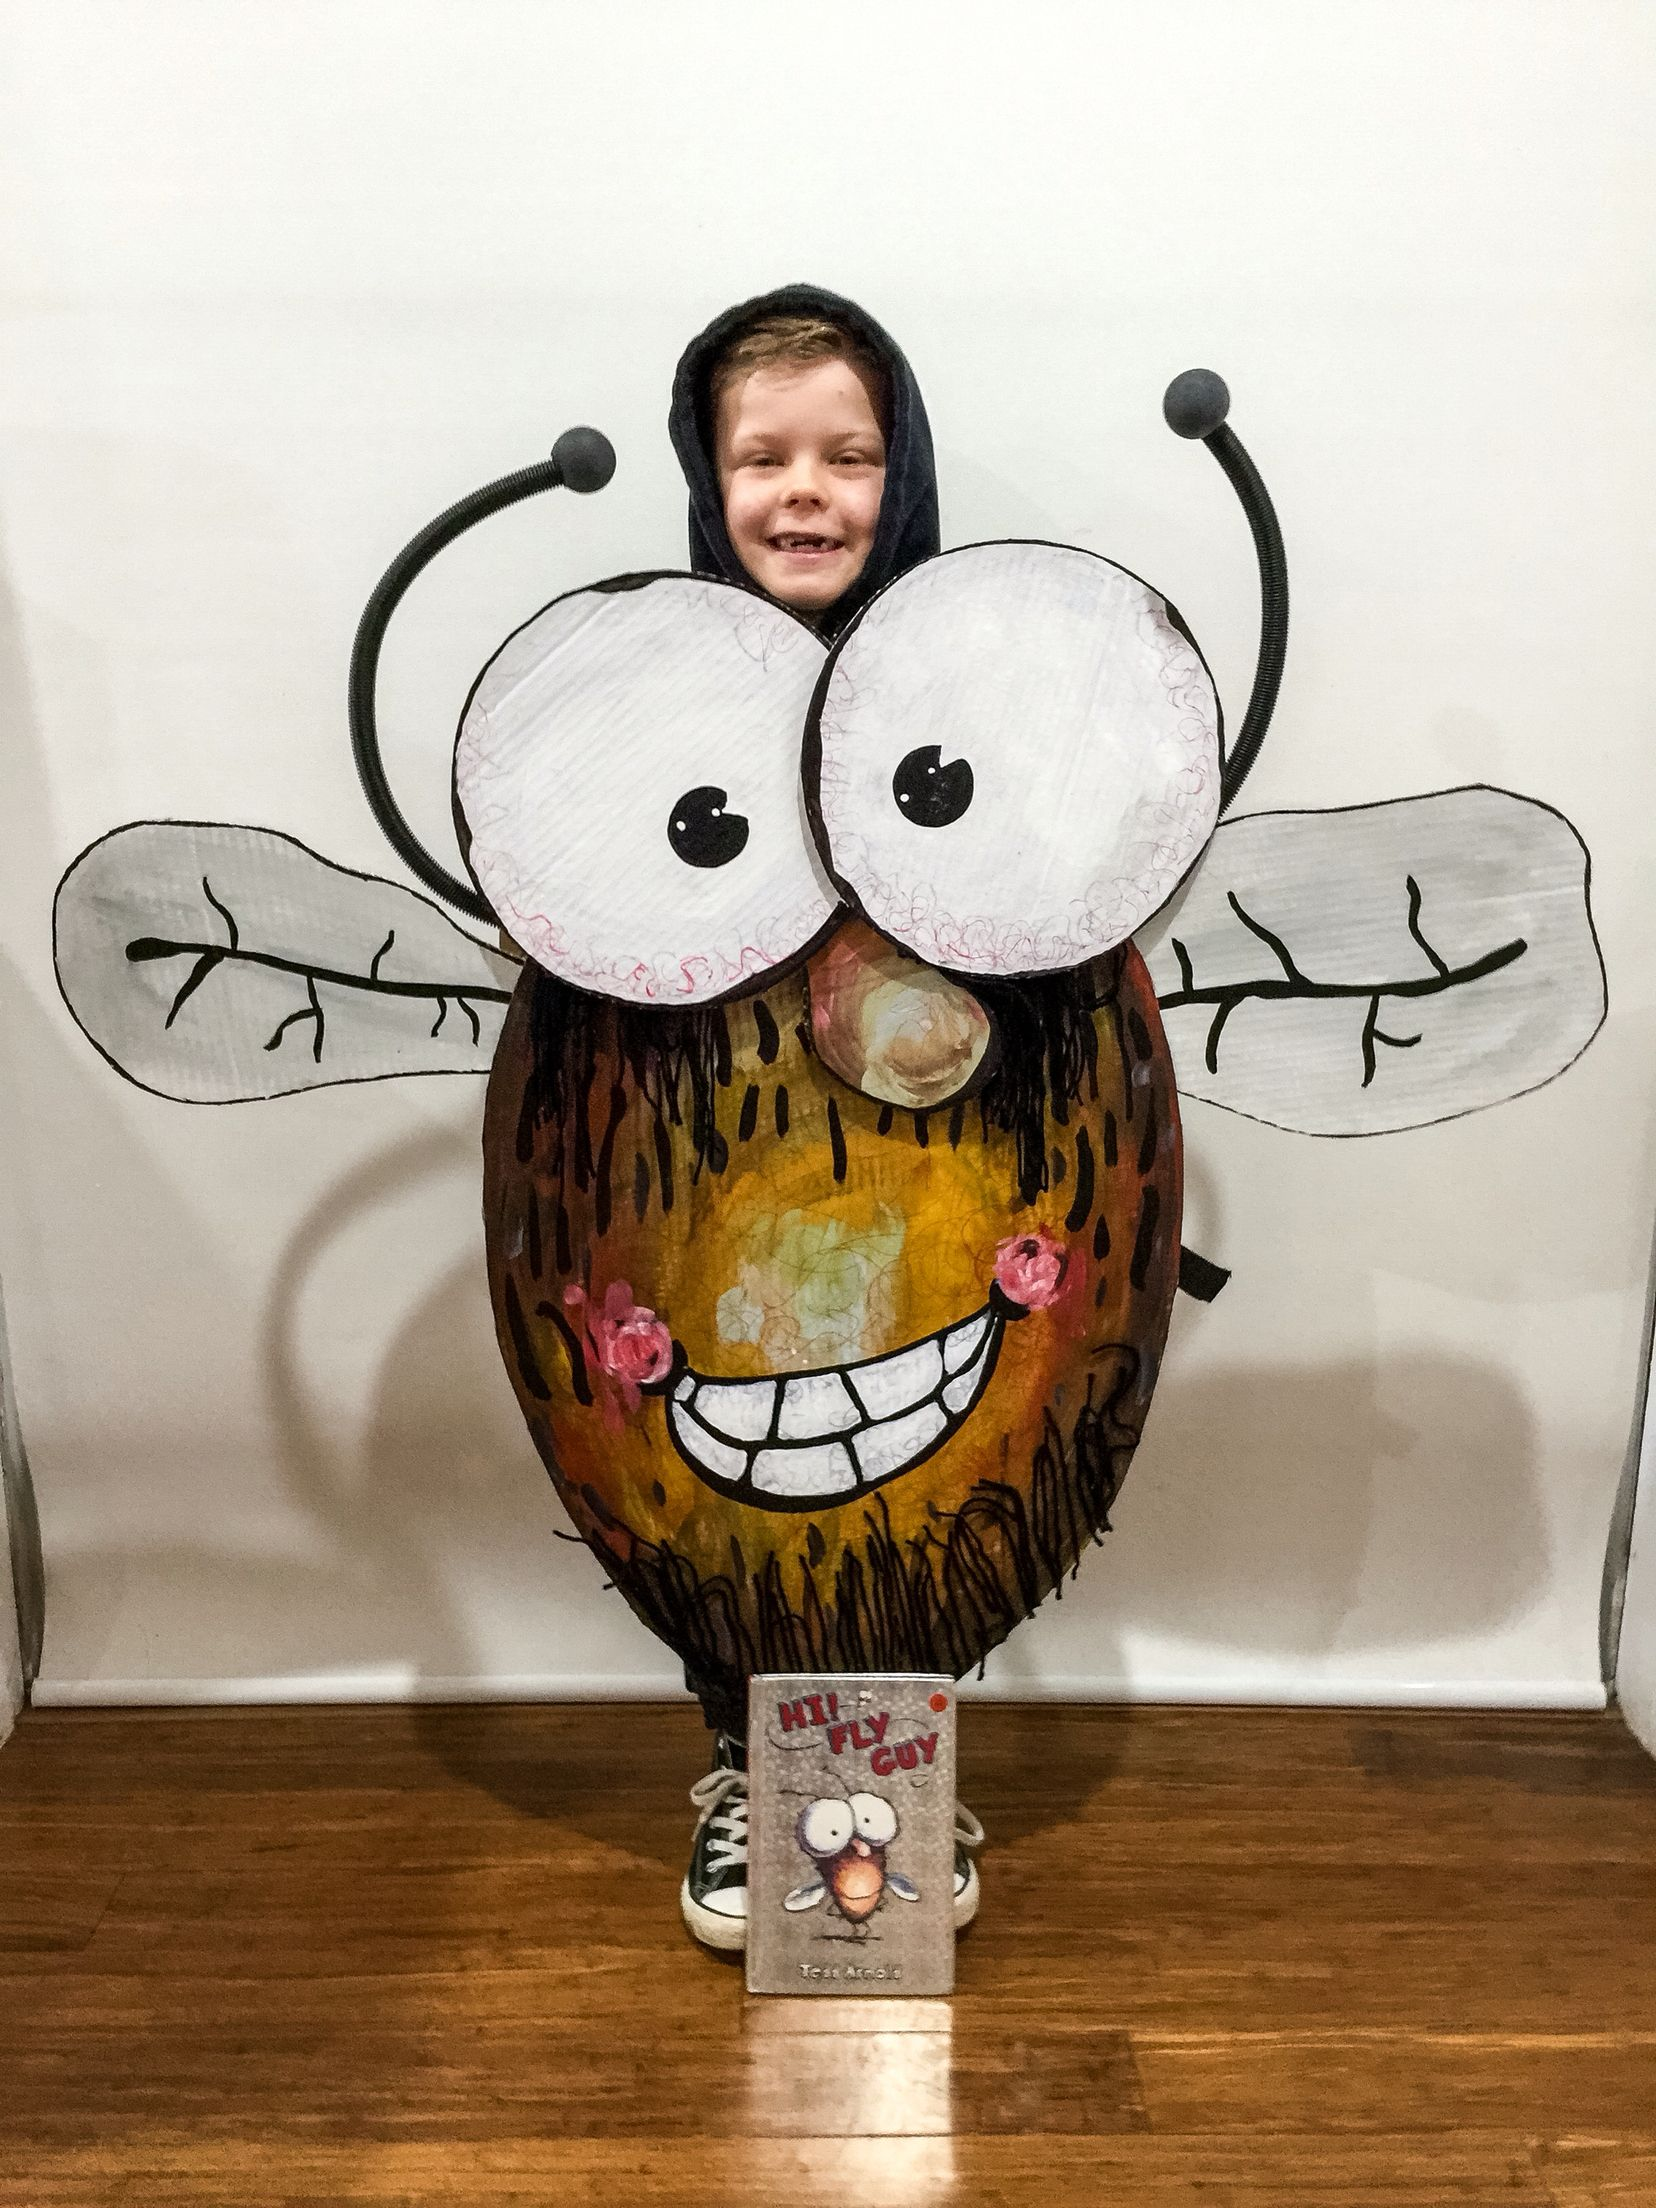 School Book Parade Costume idea. Fly Guy costume for Book week! Made from Cardboard, acrylic paint, black wool, rubber tube and 2 pingpong balls!